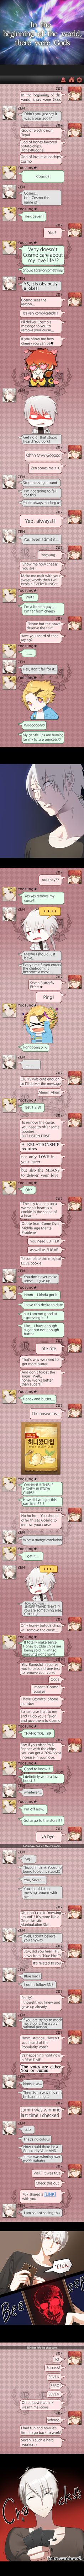 Mystic Messenger Chattoon #otome #visualnovel #geek